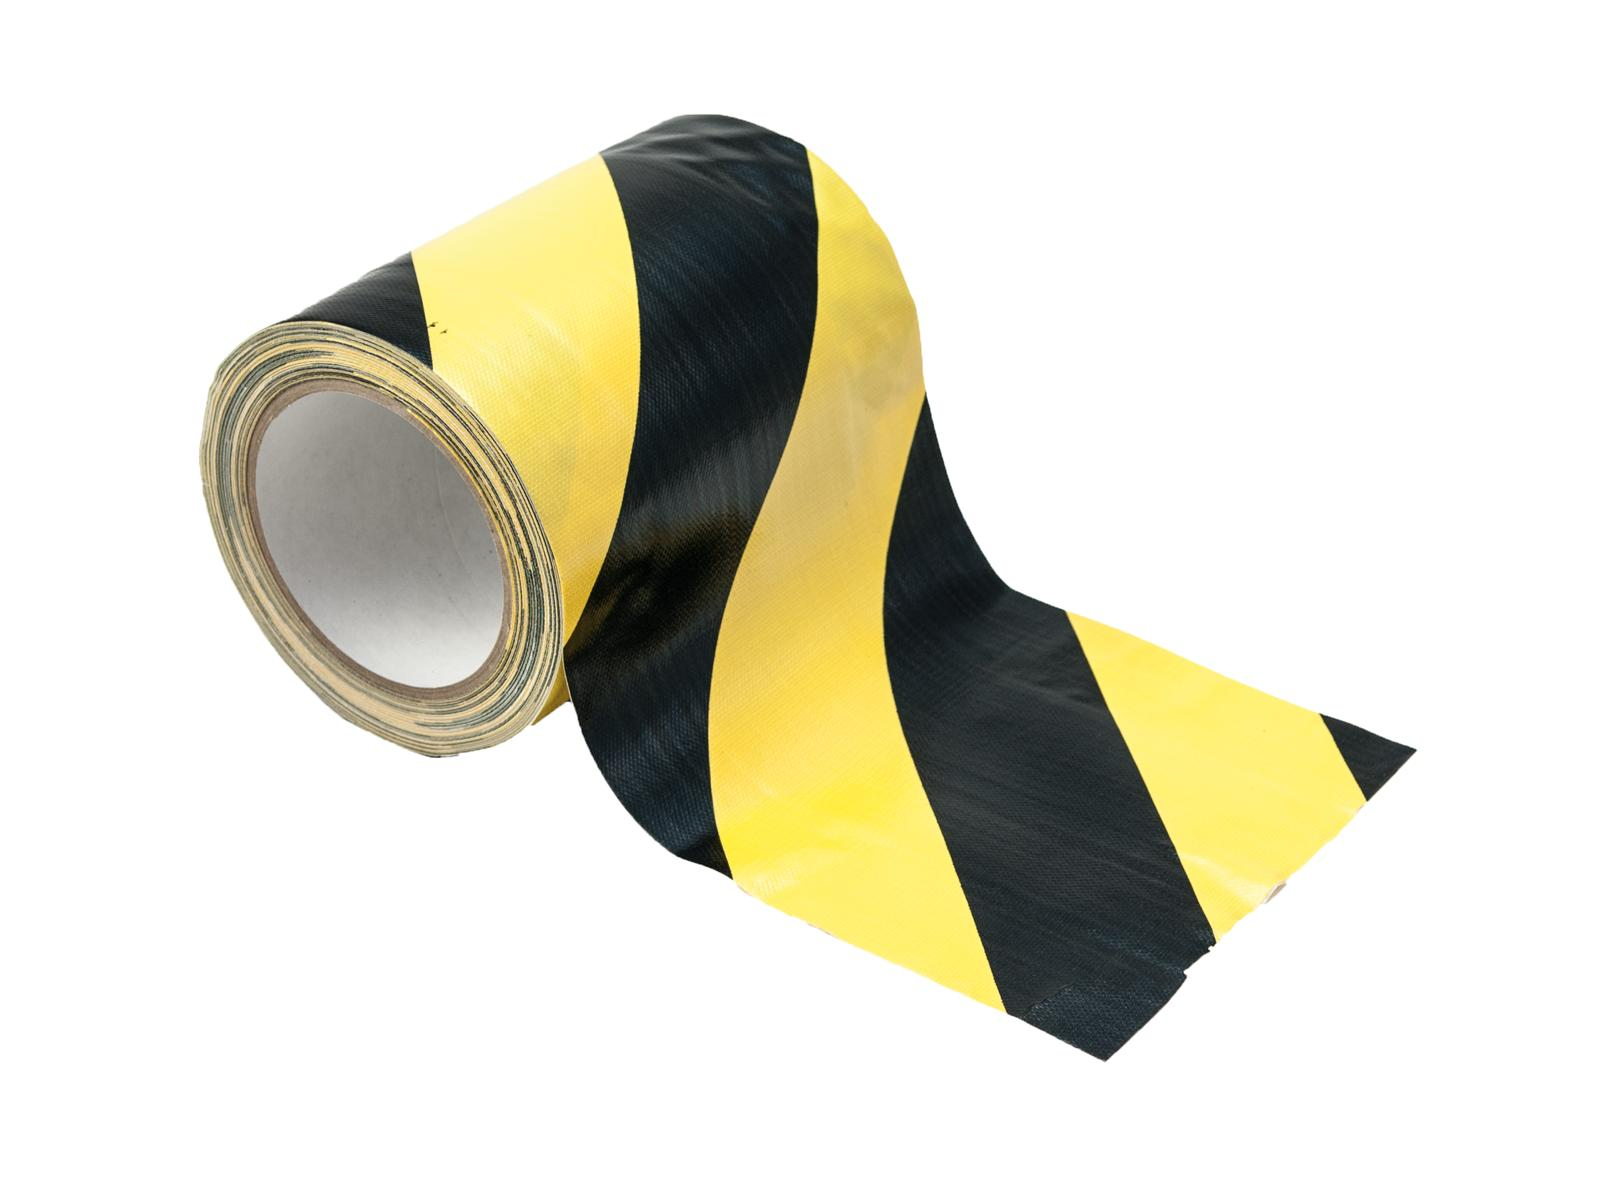 ACCESSORIO Cavo a nastro giallo/nero 150 mm x 15m